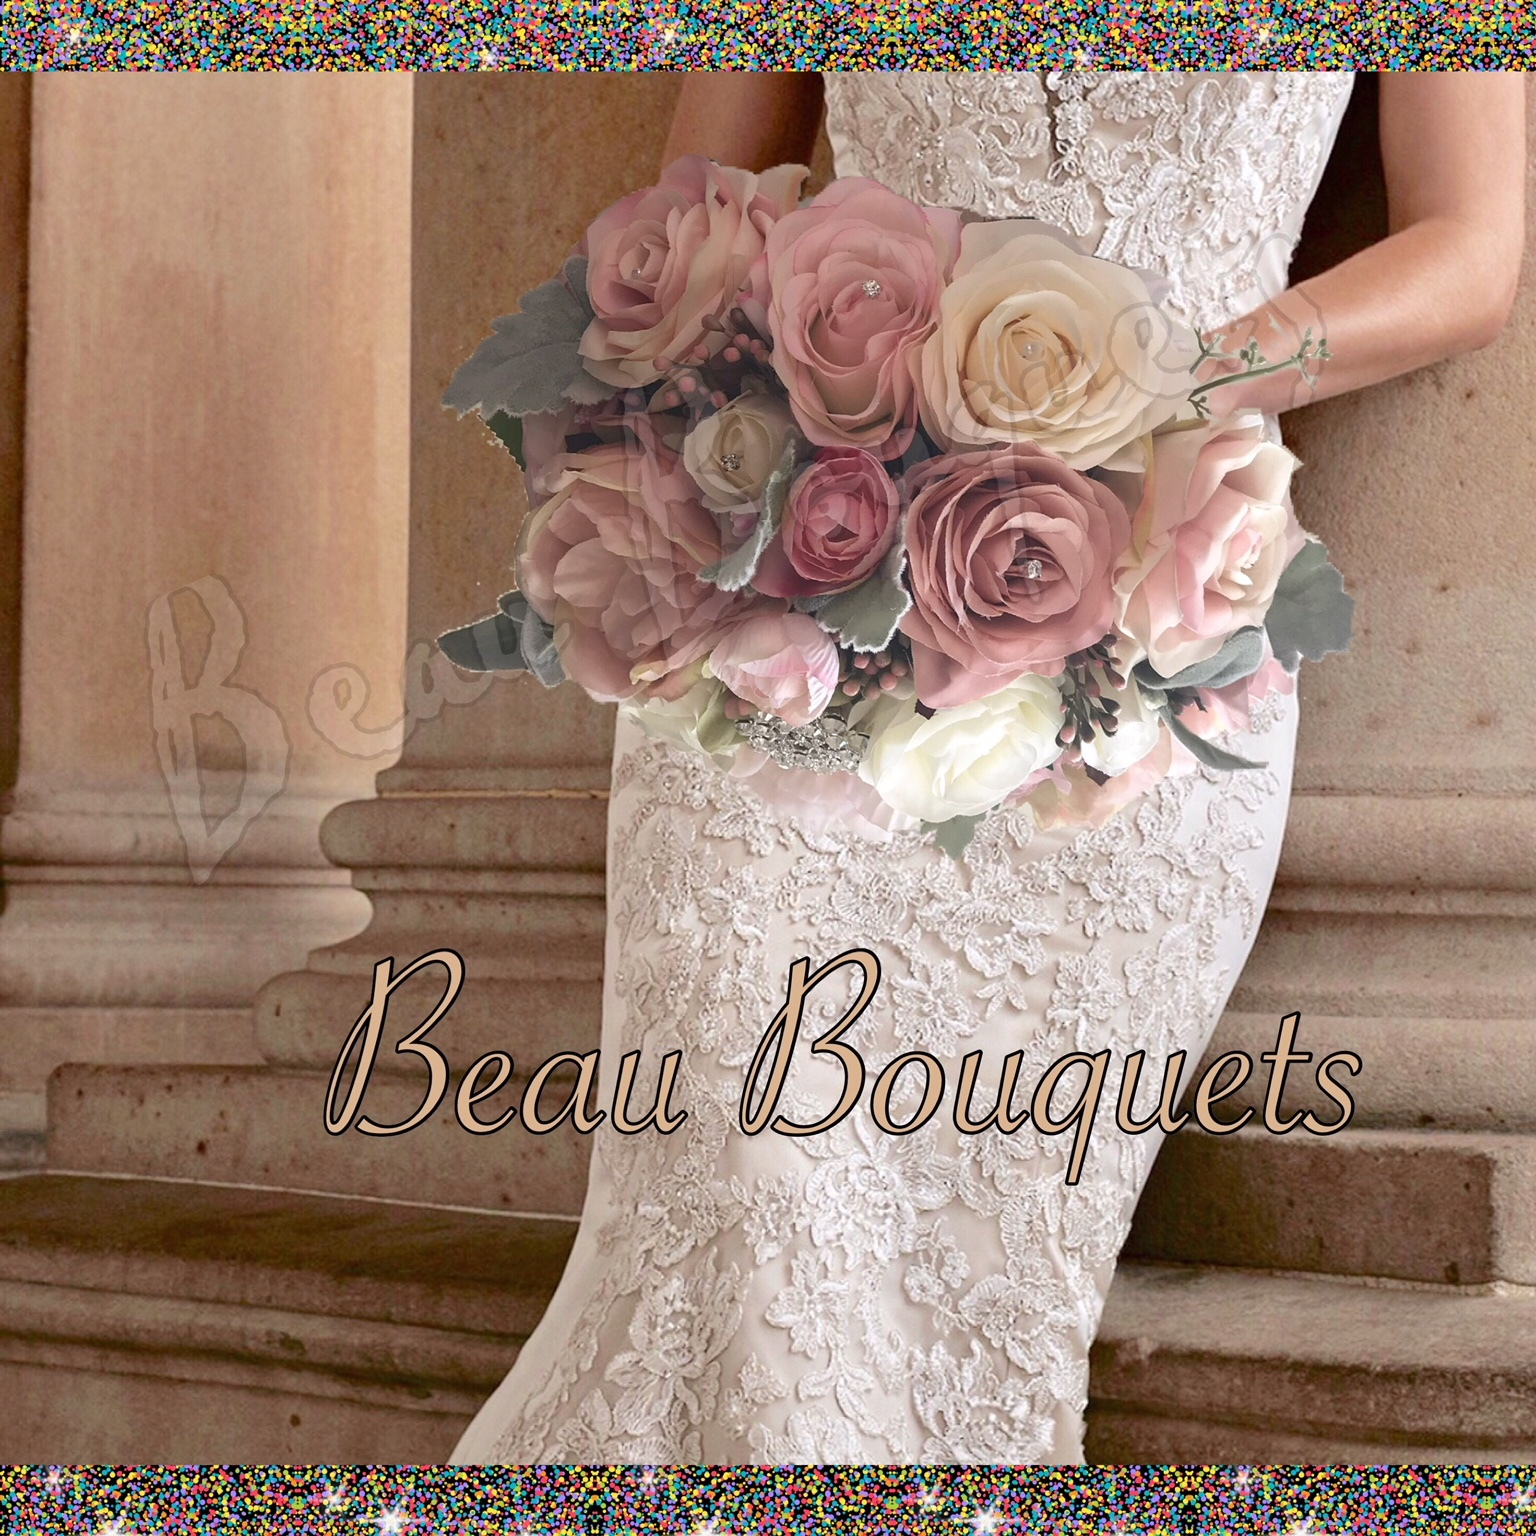 BELOVED - ROUND BRIDE BOUQUET Pale dusty pink, blush & cream roses with dusky green miller touches, brooch detail